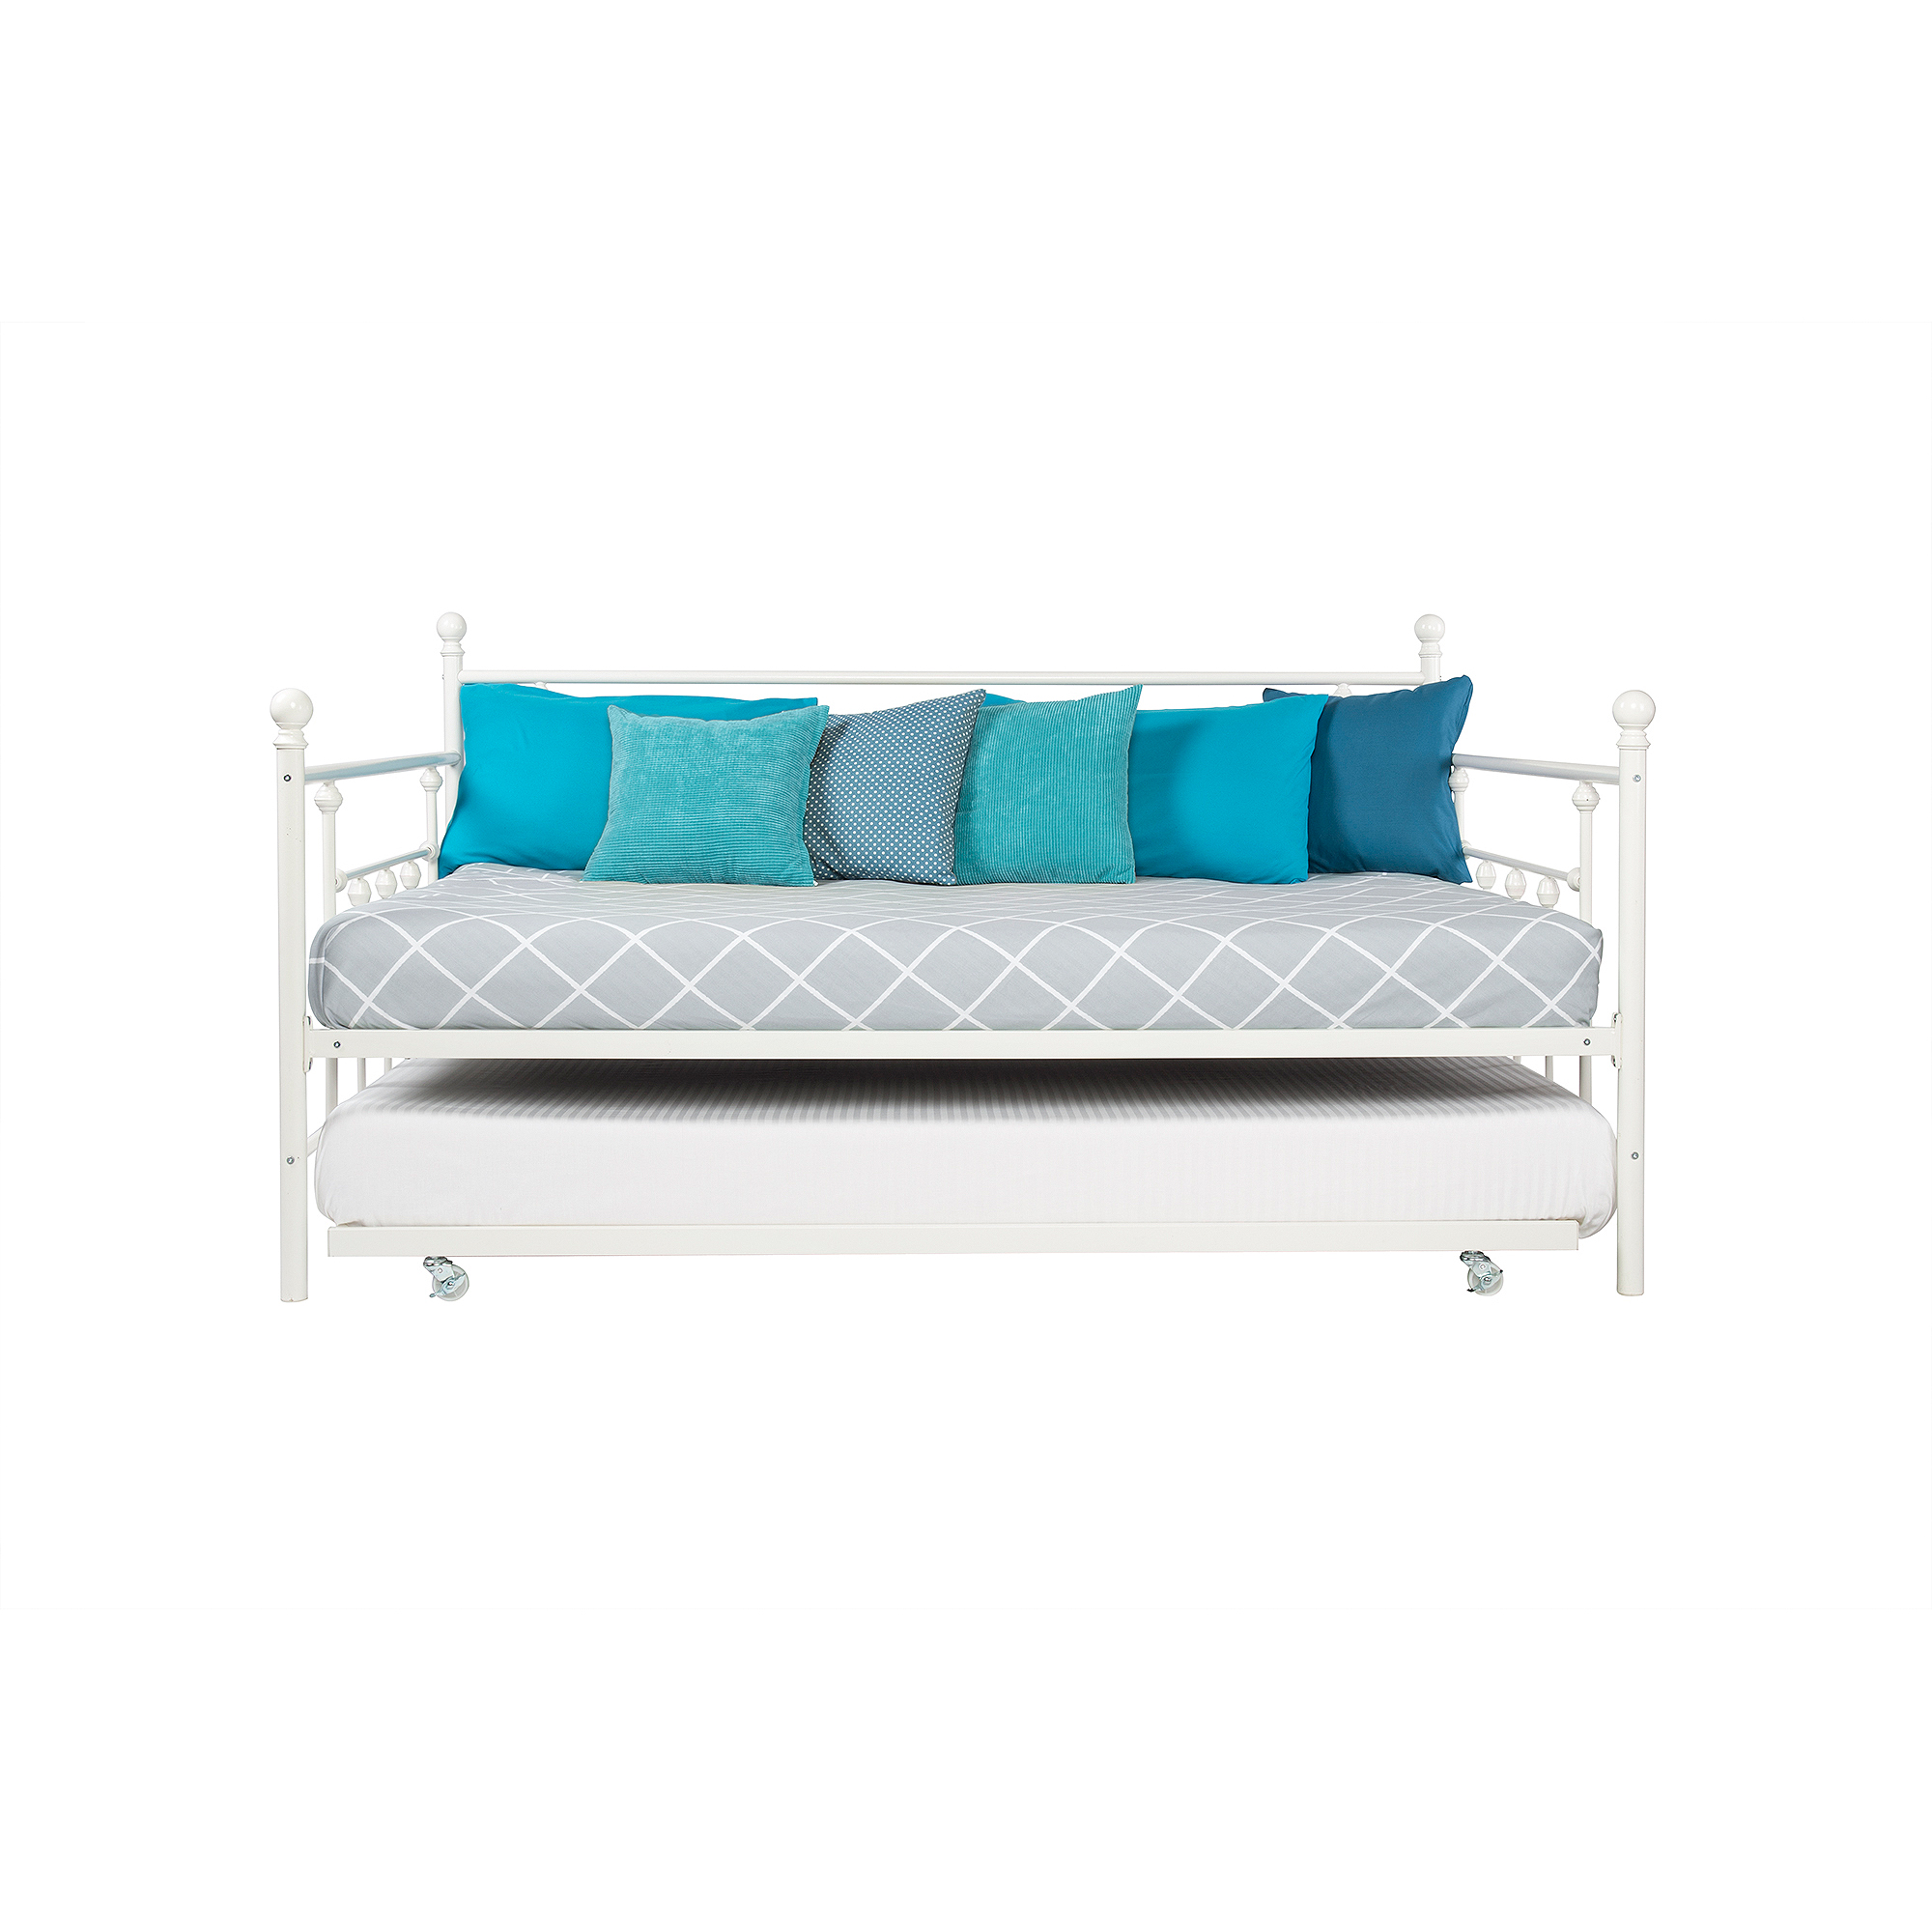 Bedroom Amazing Full Size Daybed With Trundle For Bedroom